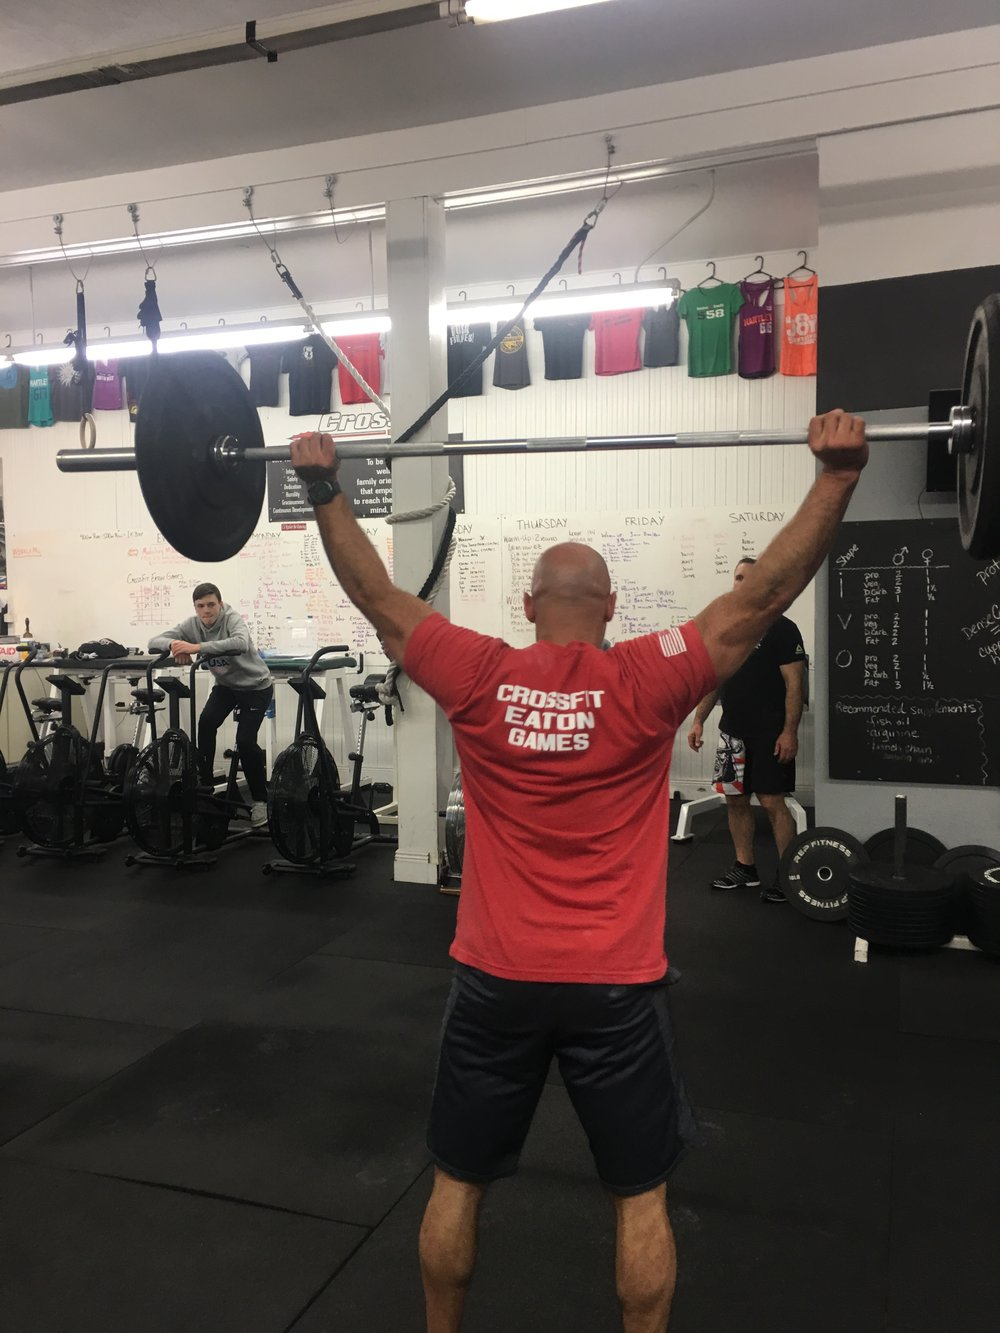 Join us tonight for the final wod and party to close out our CrossFit Eaton Games! Wear your team colors, team red and black bring food to share. It's been an awesome games season, let's close it out with some fun!